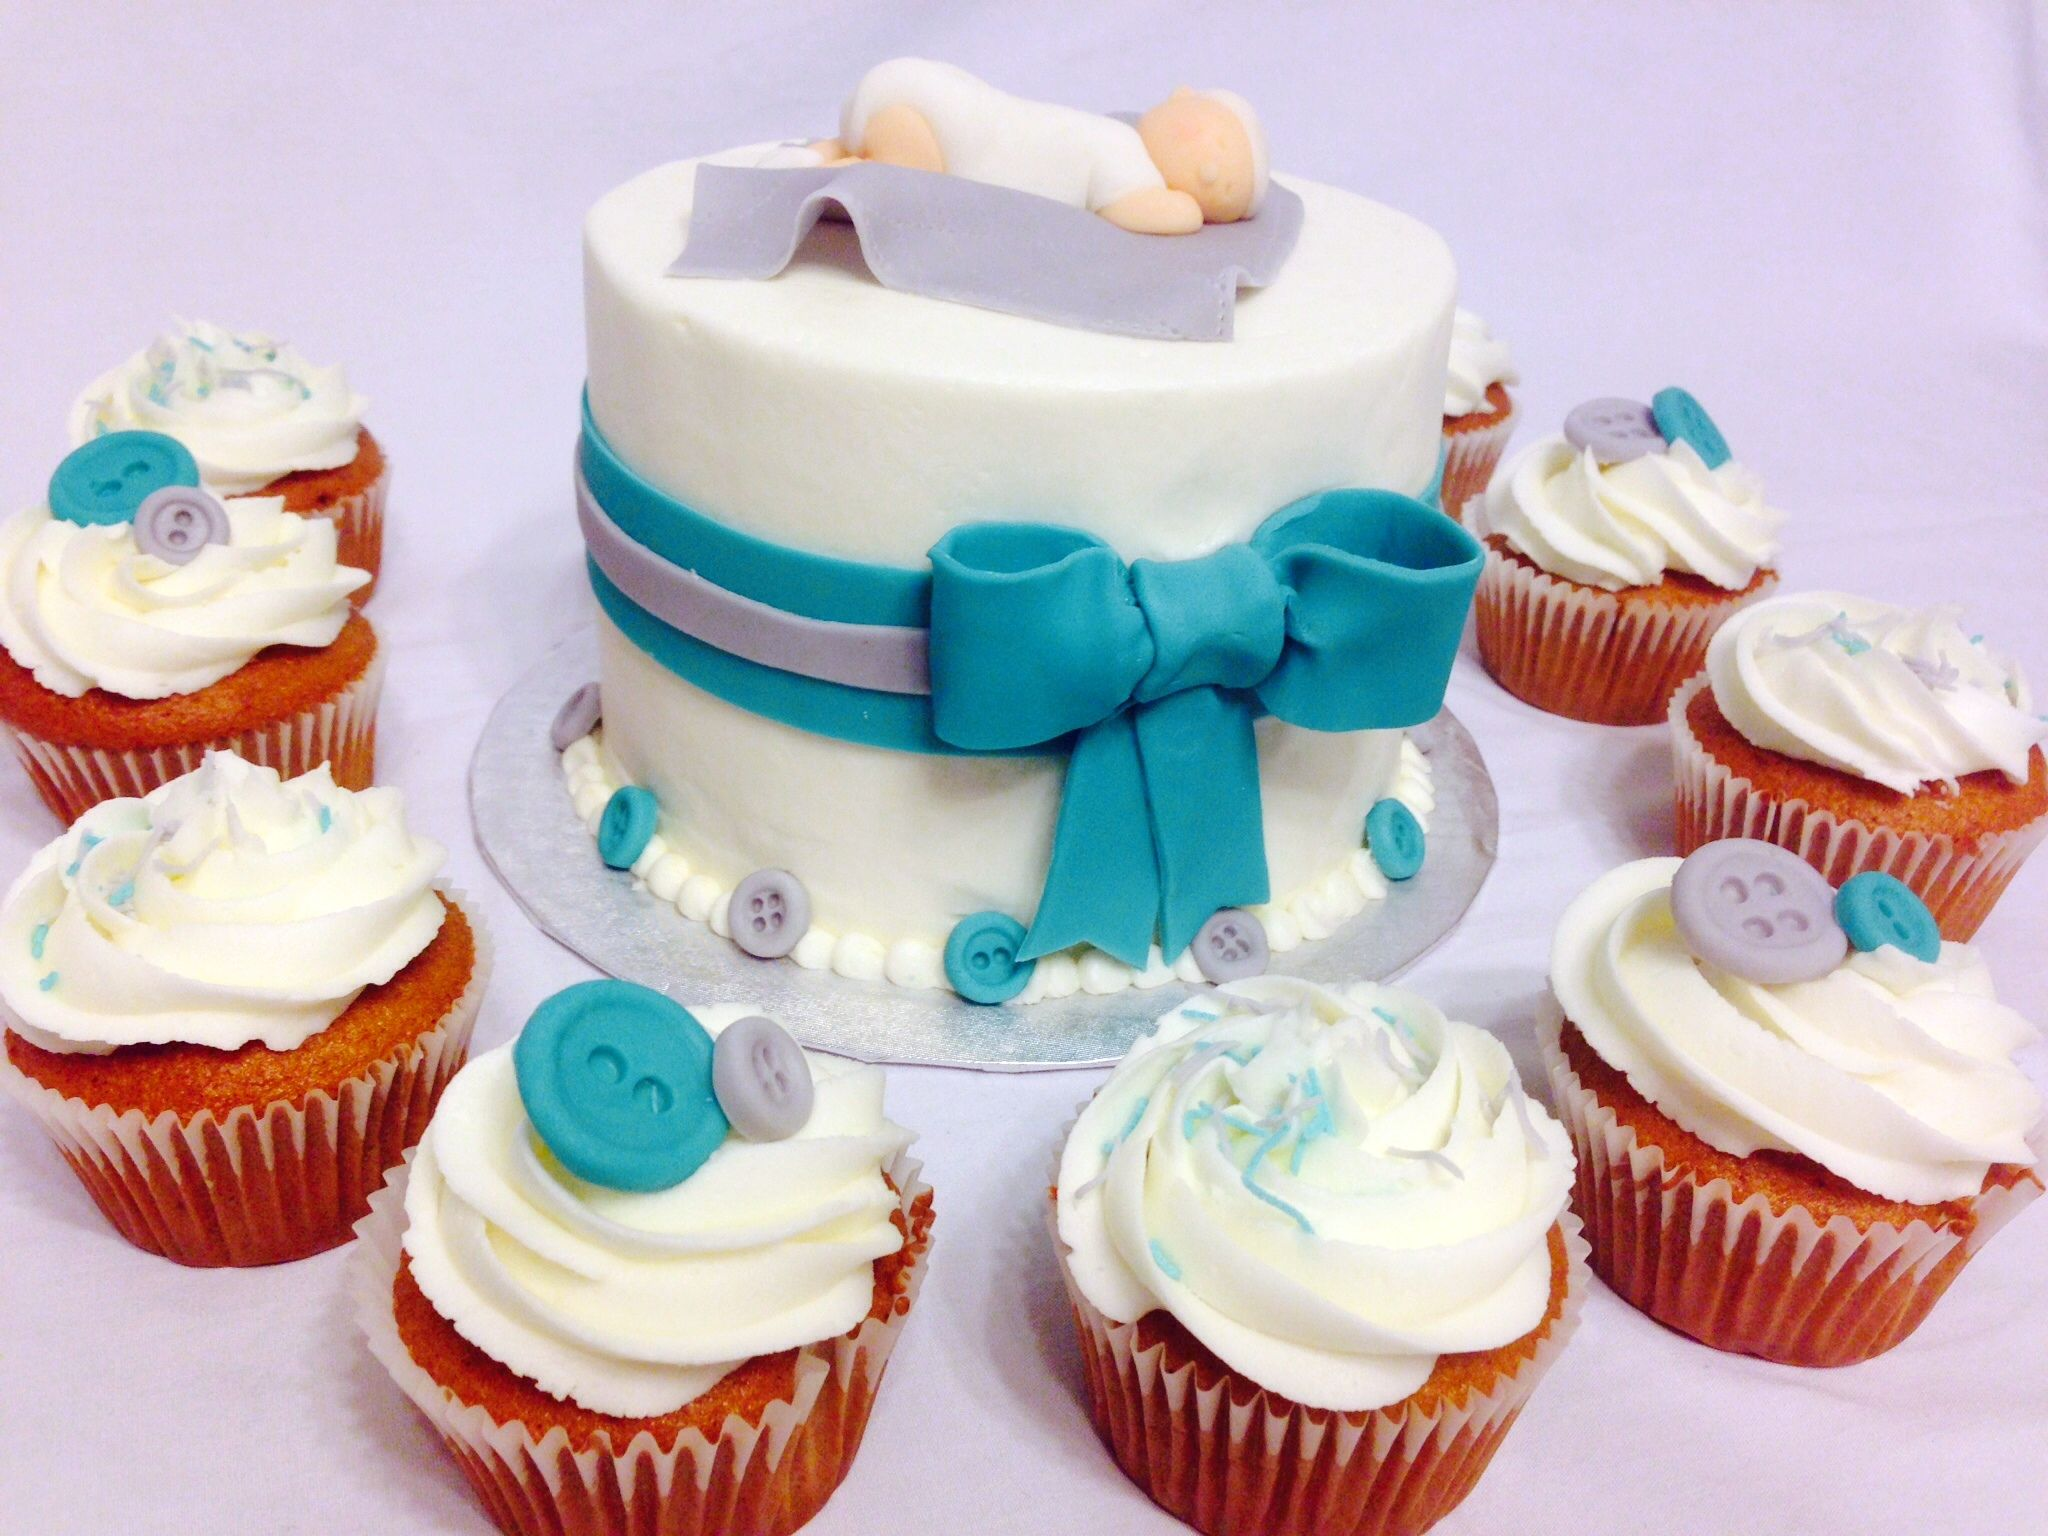 baby shower cake with cute fondant buttons and cupcakes.